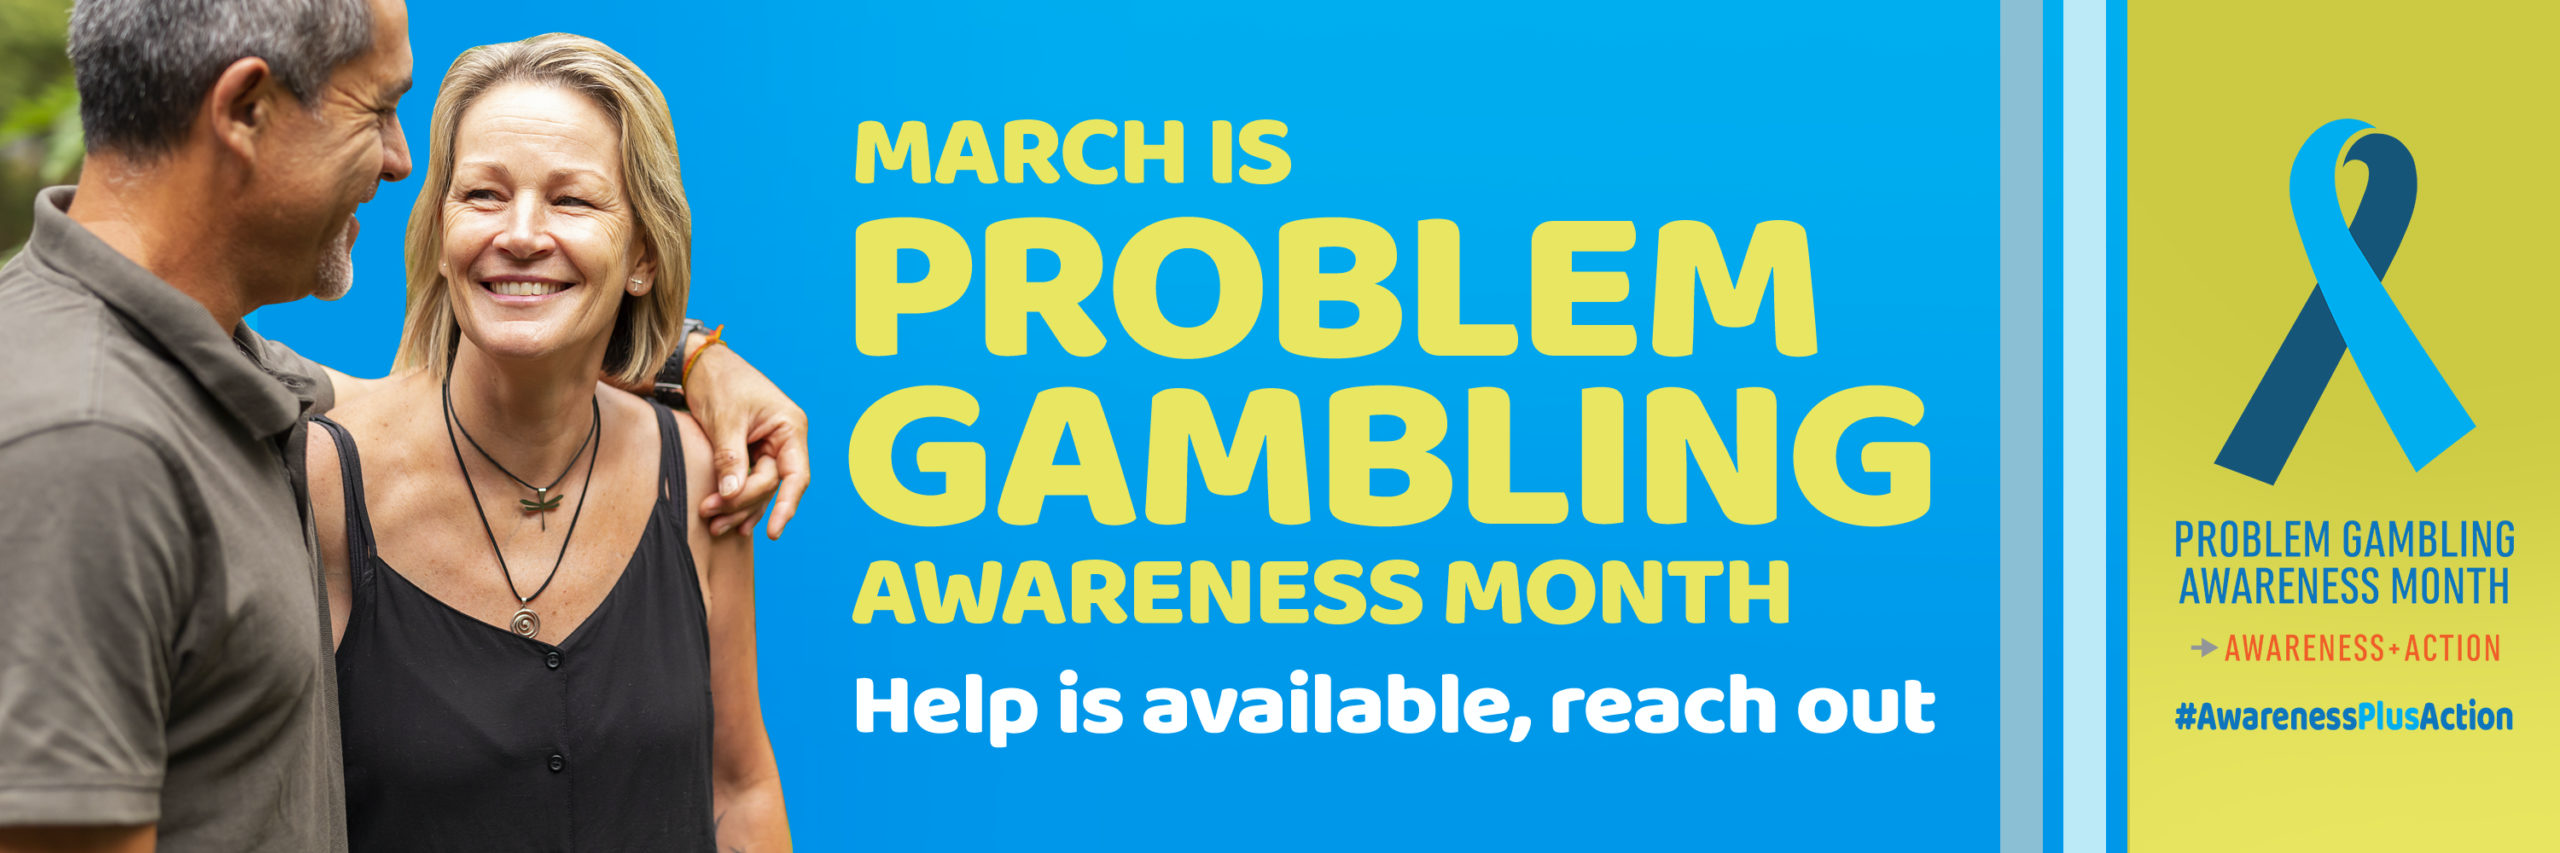 Problem Gambling Awereness Month Banner